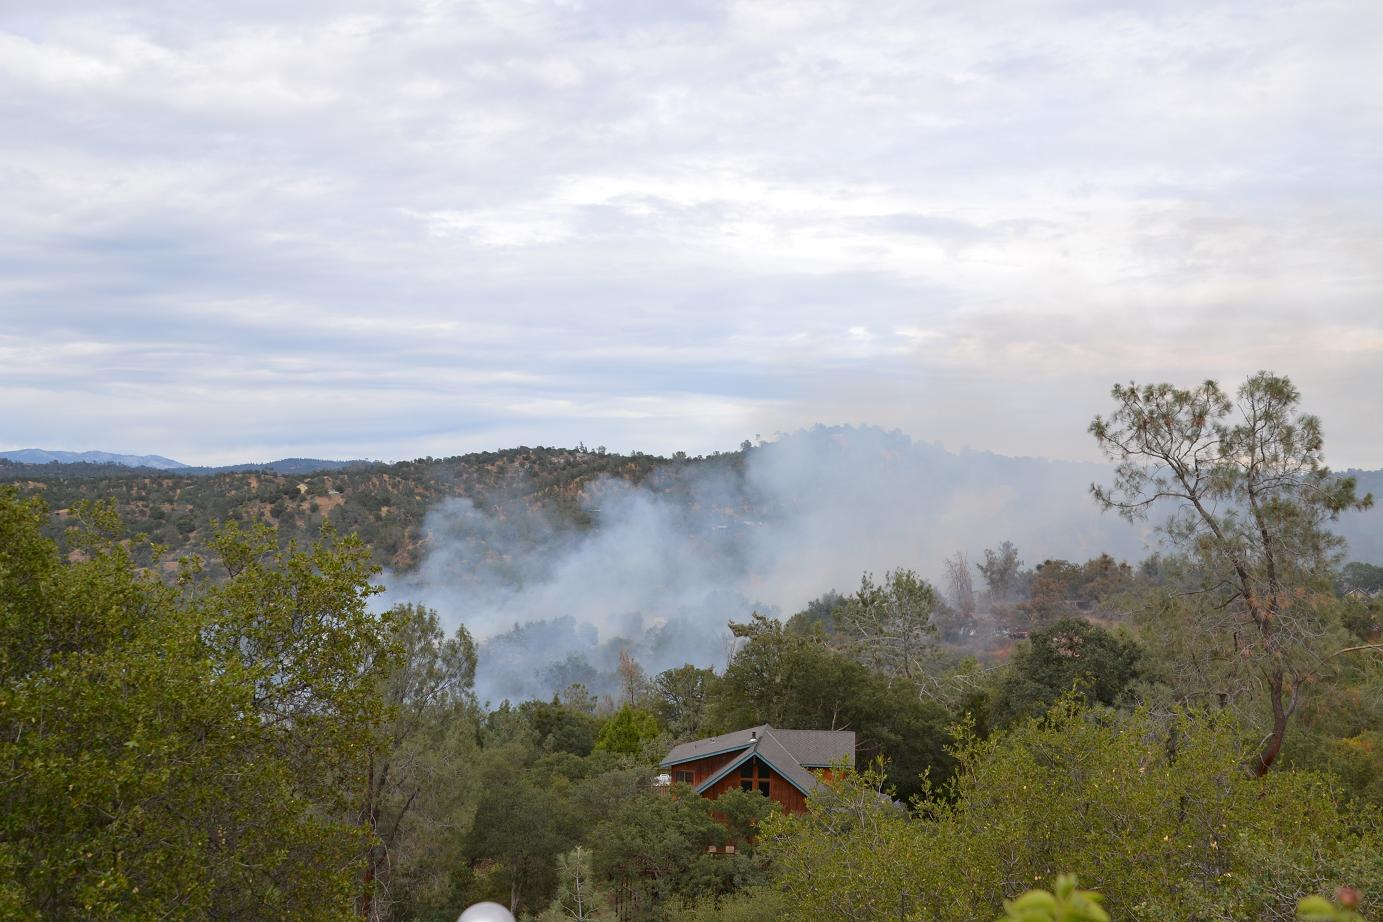 Homes threatened ahead of fire